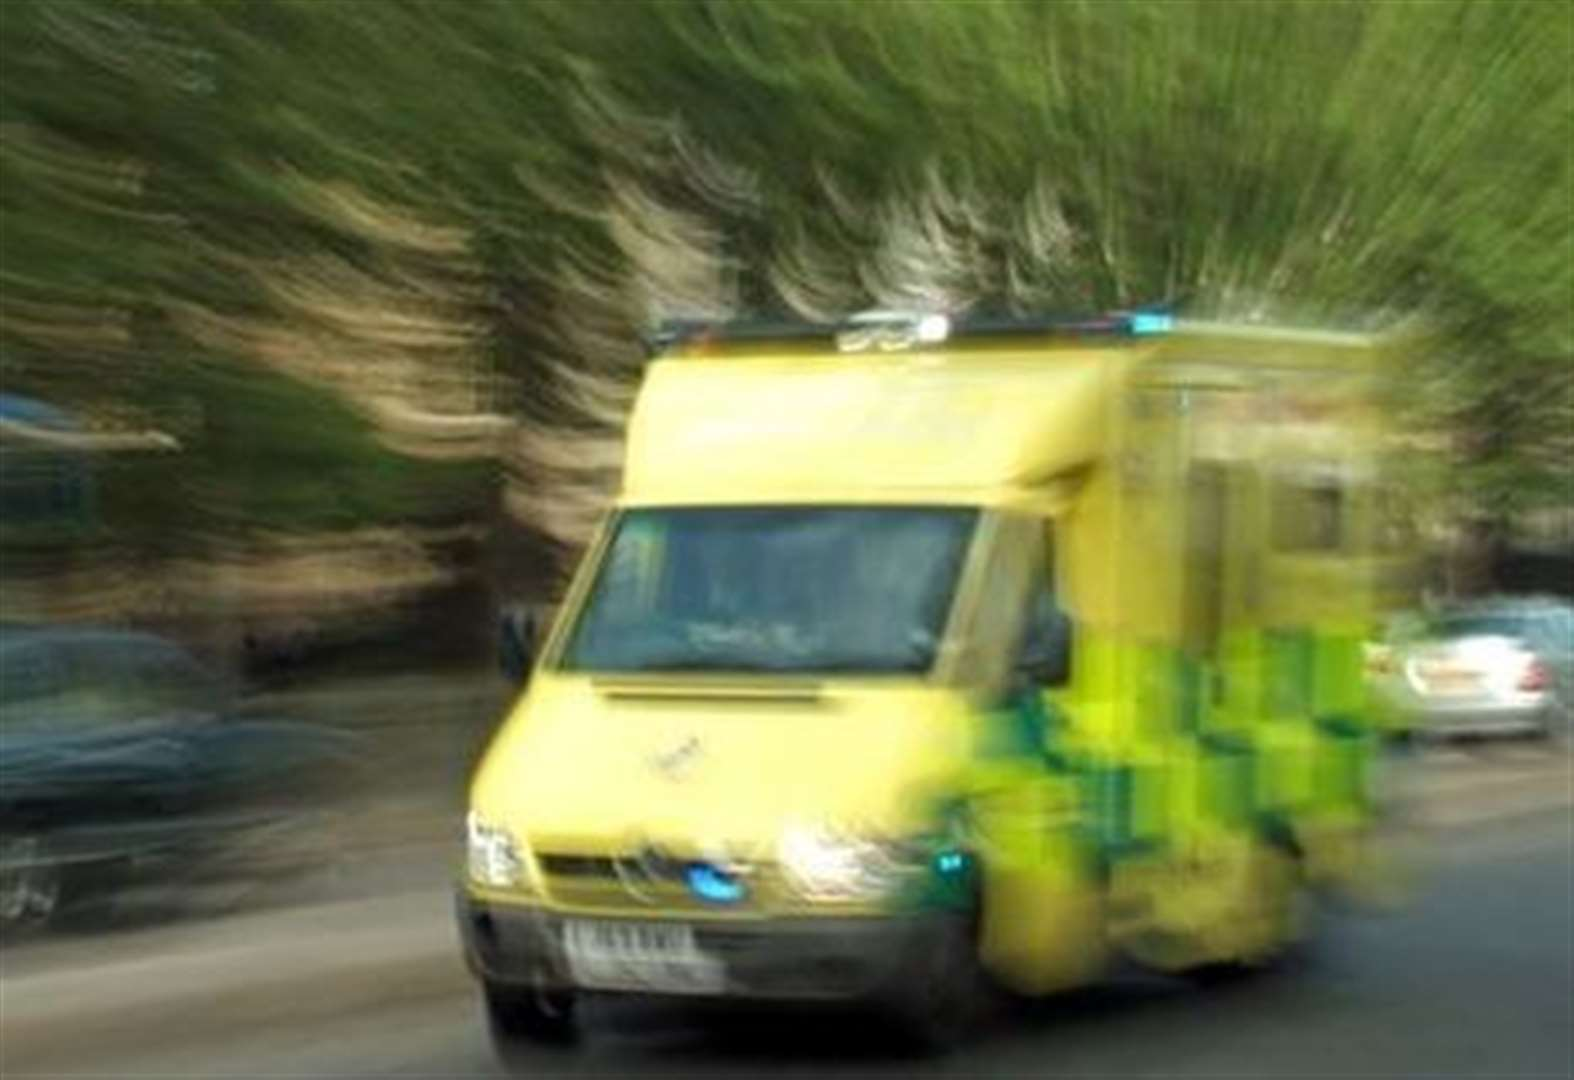 Ambulance called to town centre